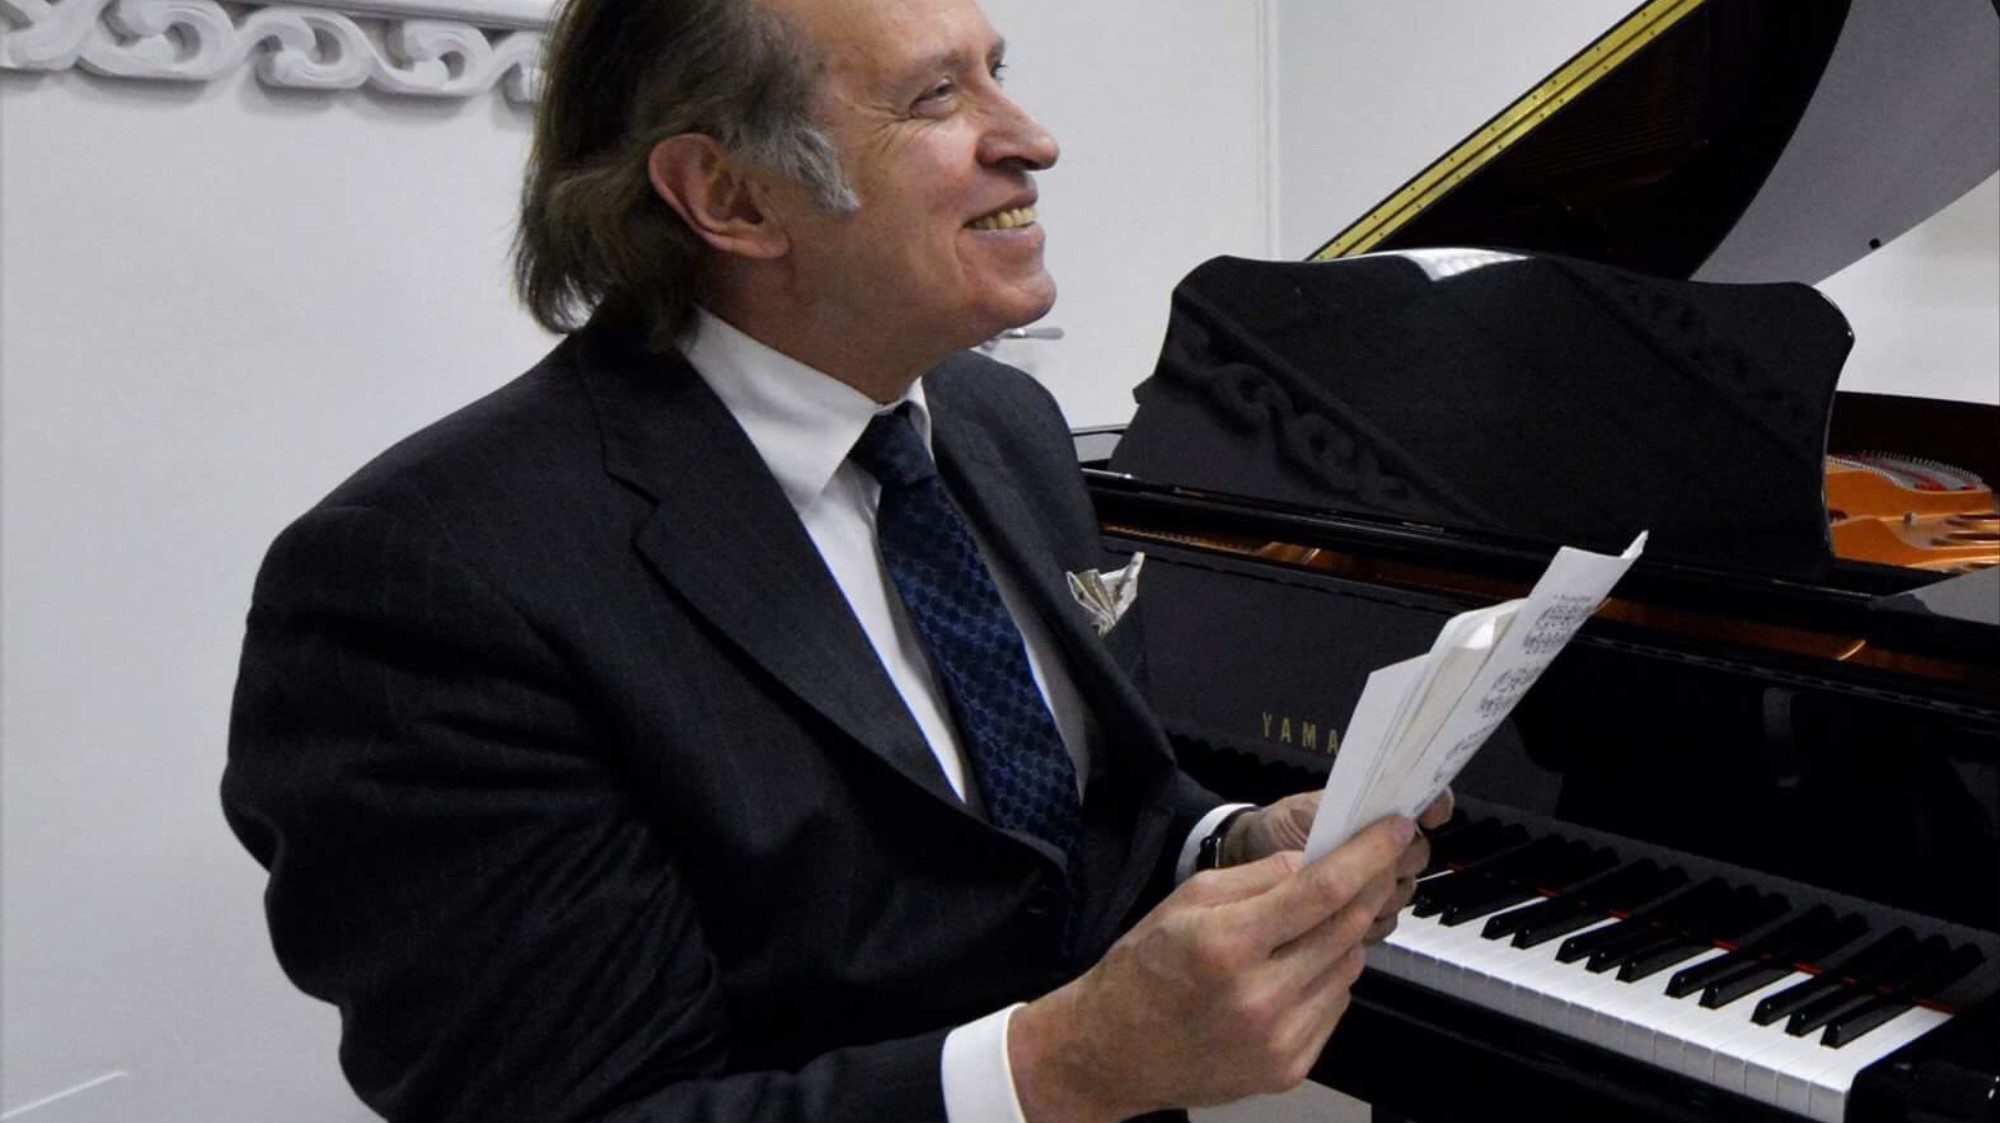 The 71-Year-Old Composer Behind the 'Curb Your Enthusiasm